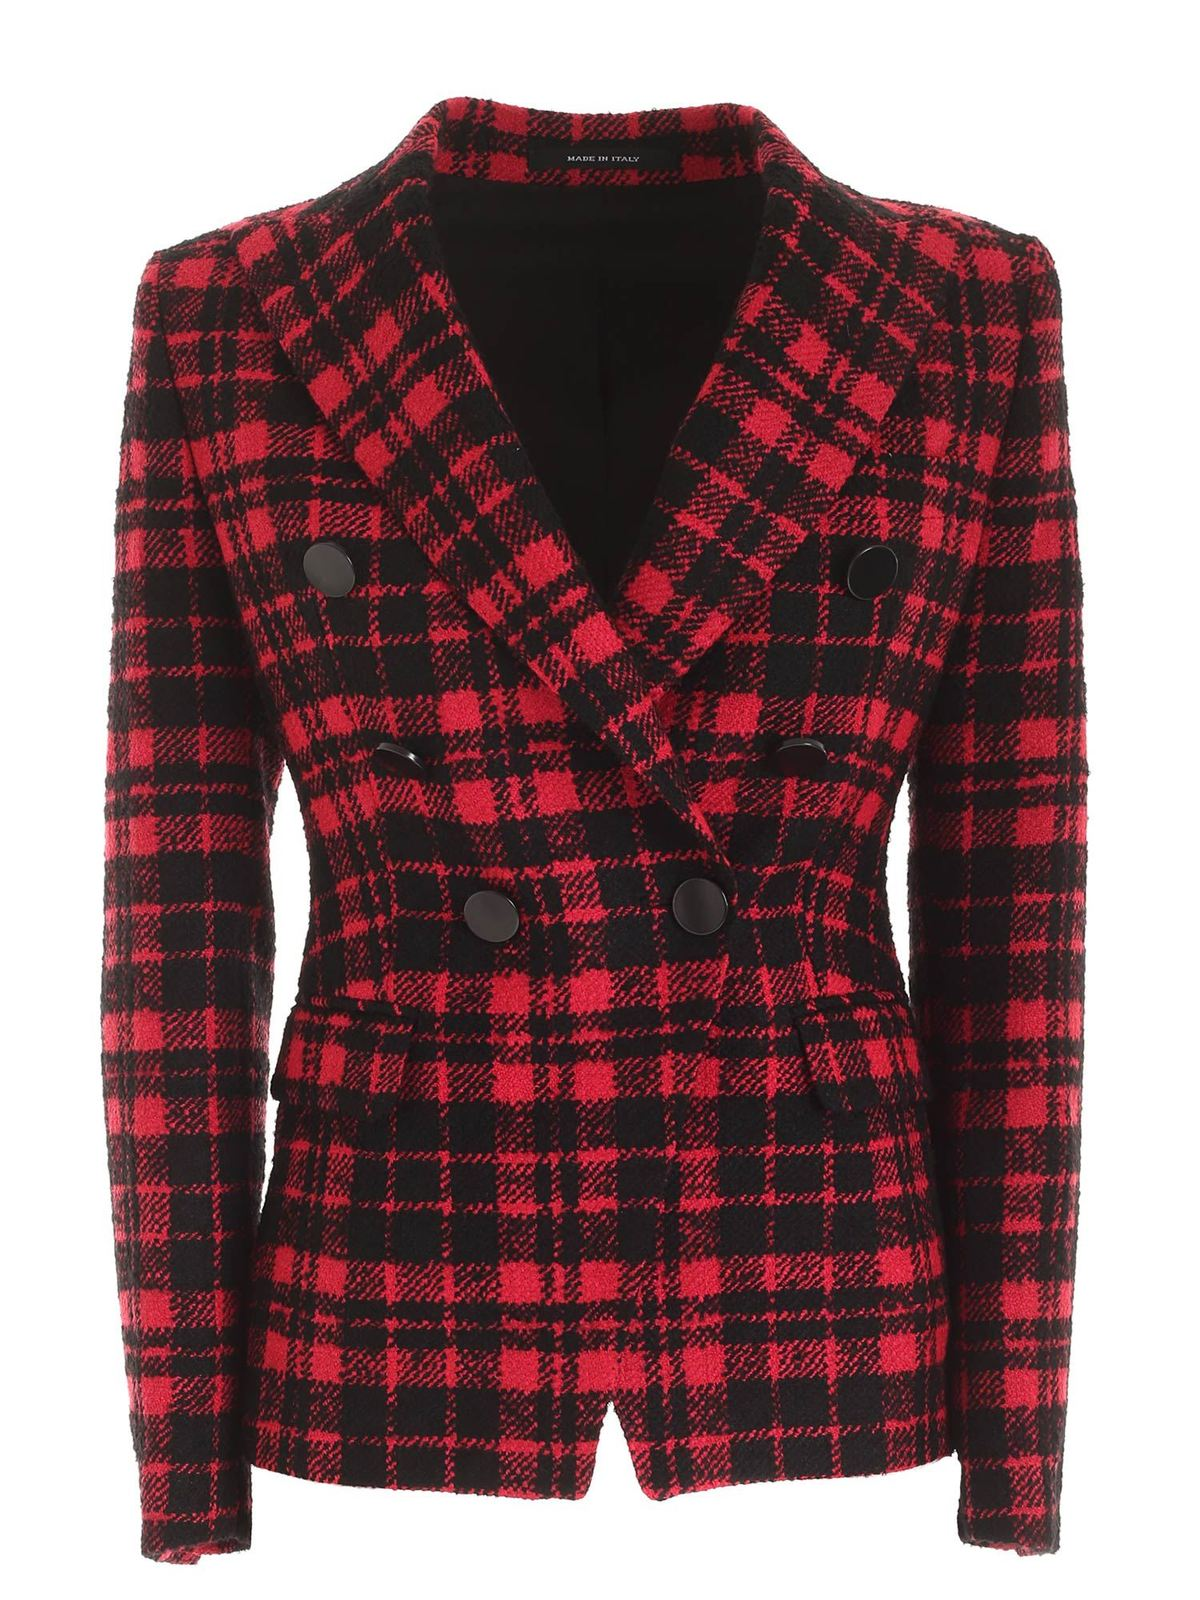 Tagliatore ALICYA CHECKED JACKET IN BLACK AND FUCHSIA